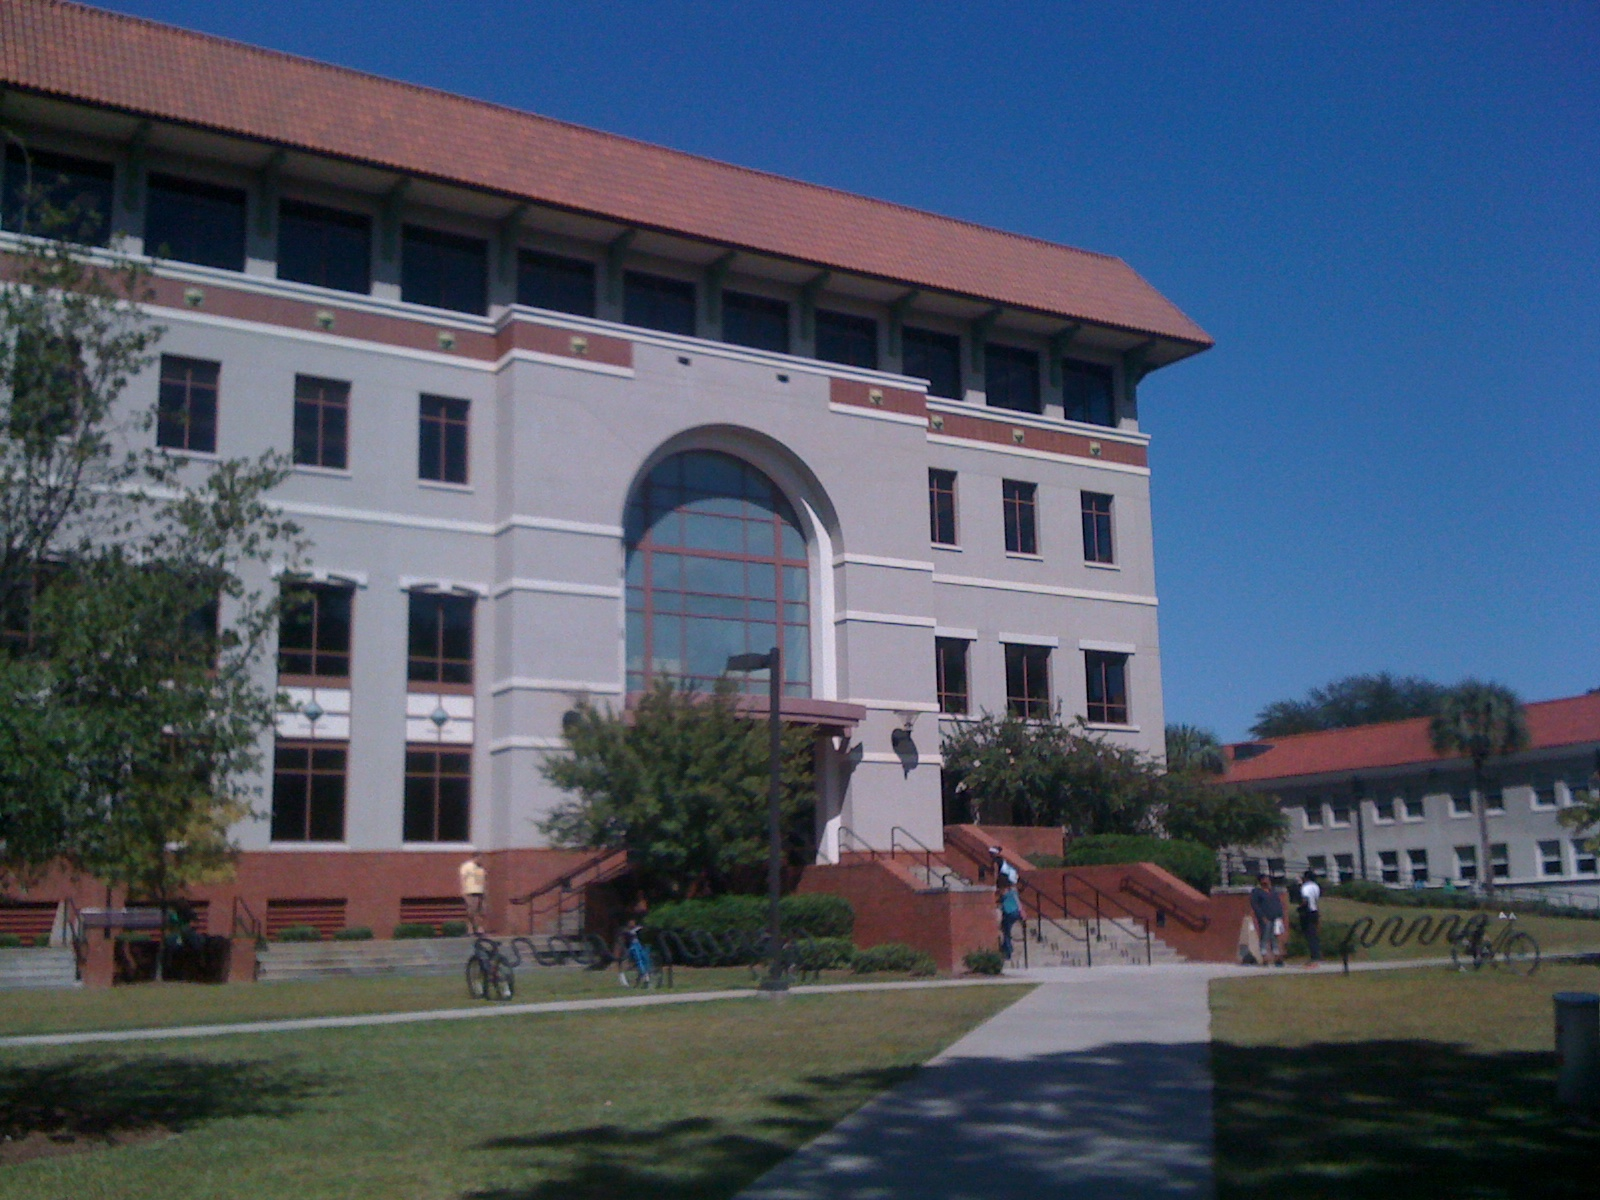 South entrance of Odum Library, 10/07/2010